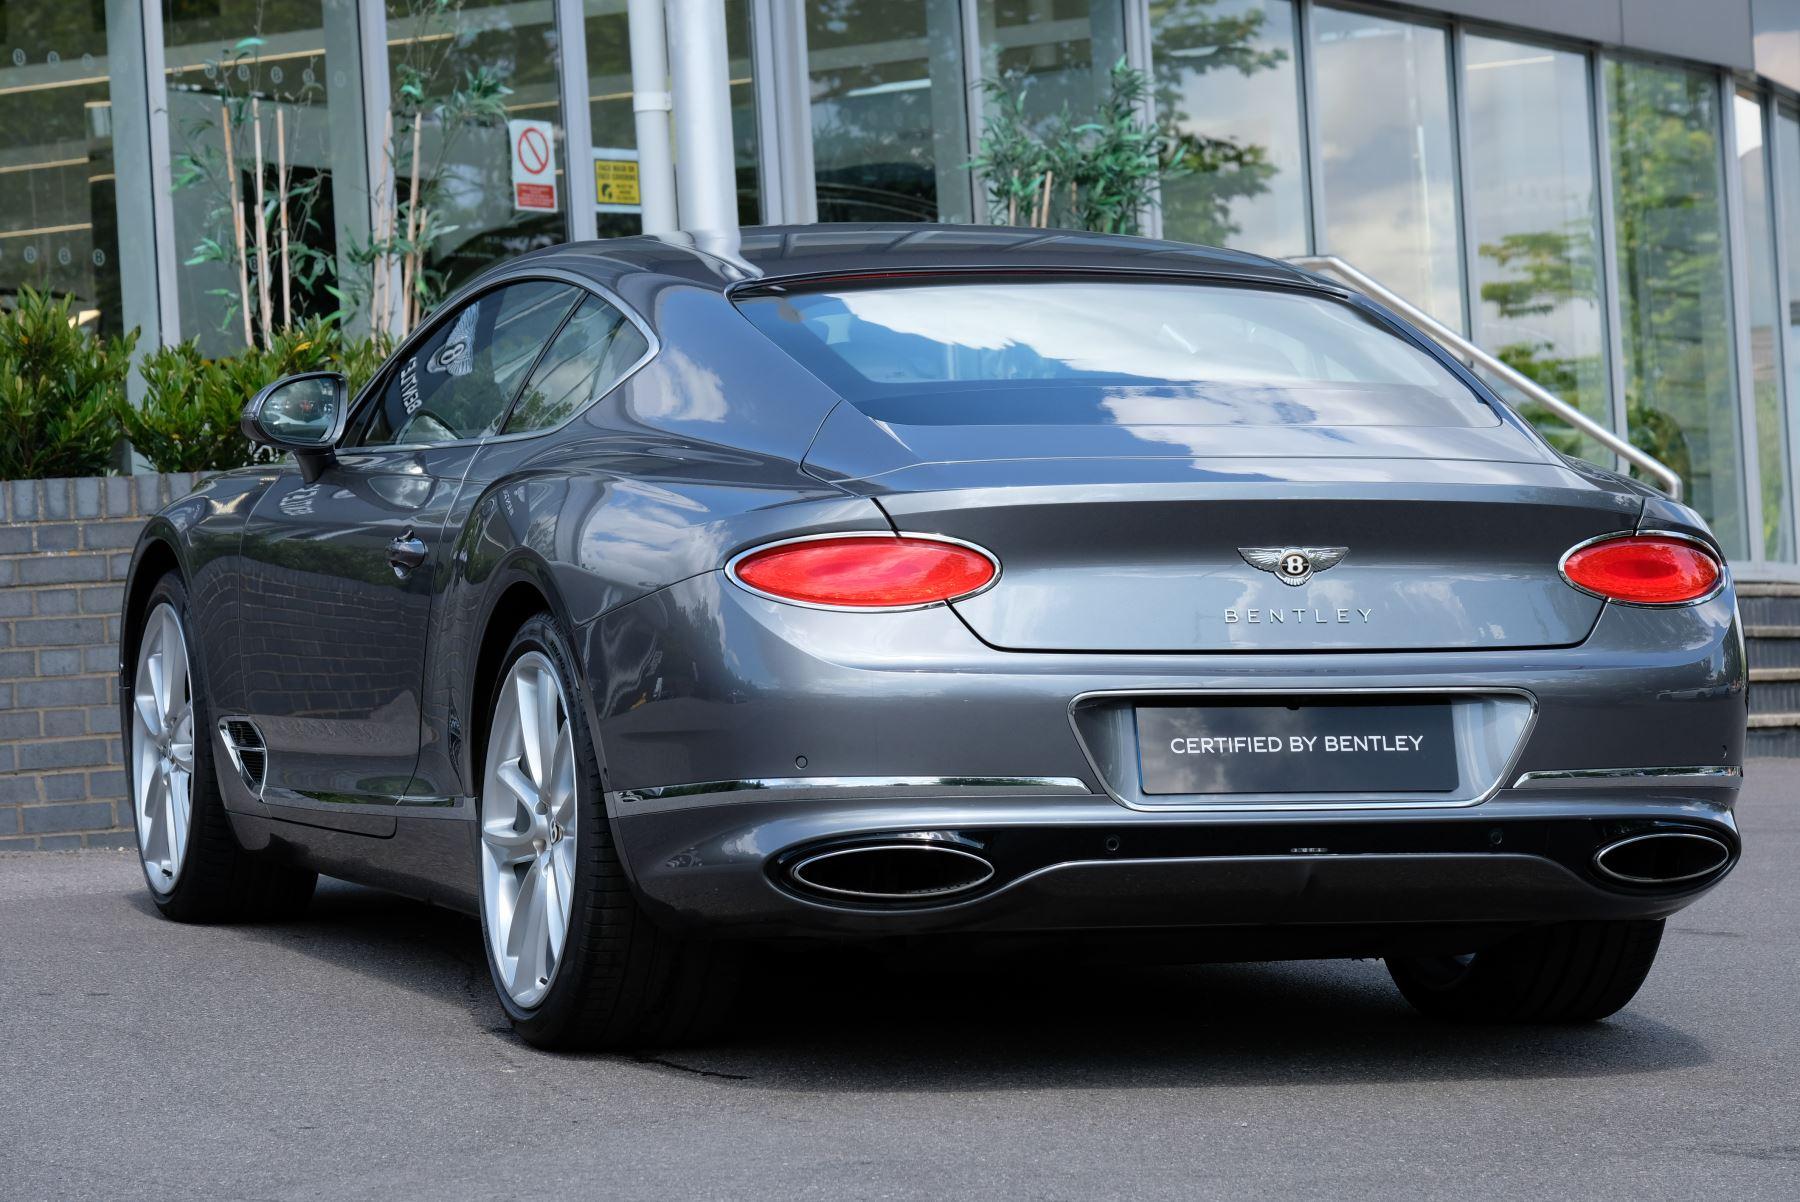 Bentley Continental GT 6.0 W12 2dr image 4